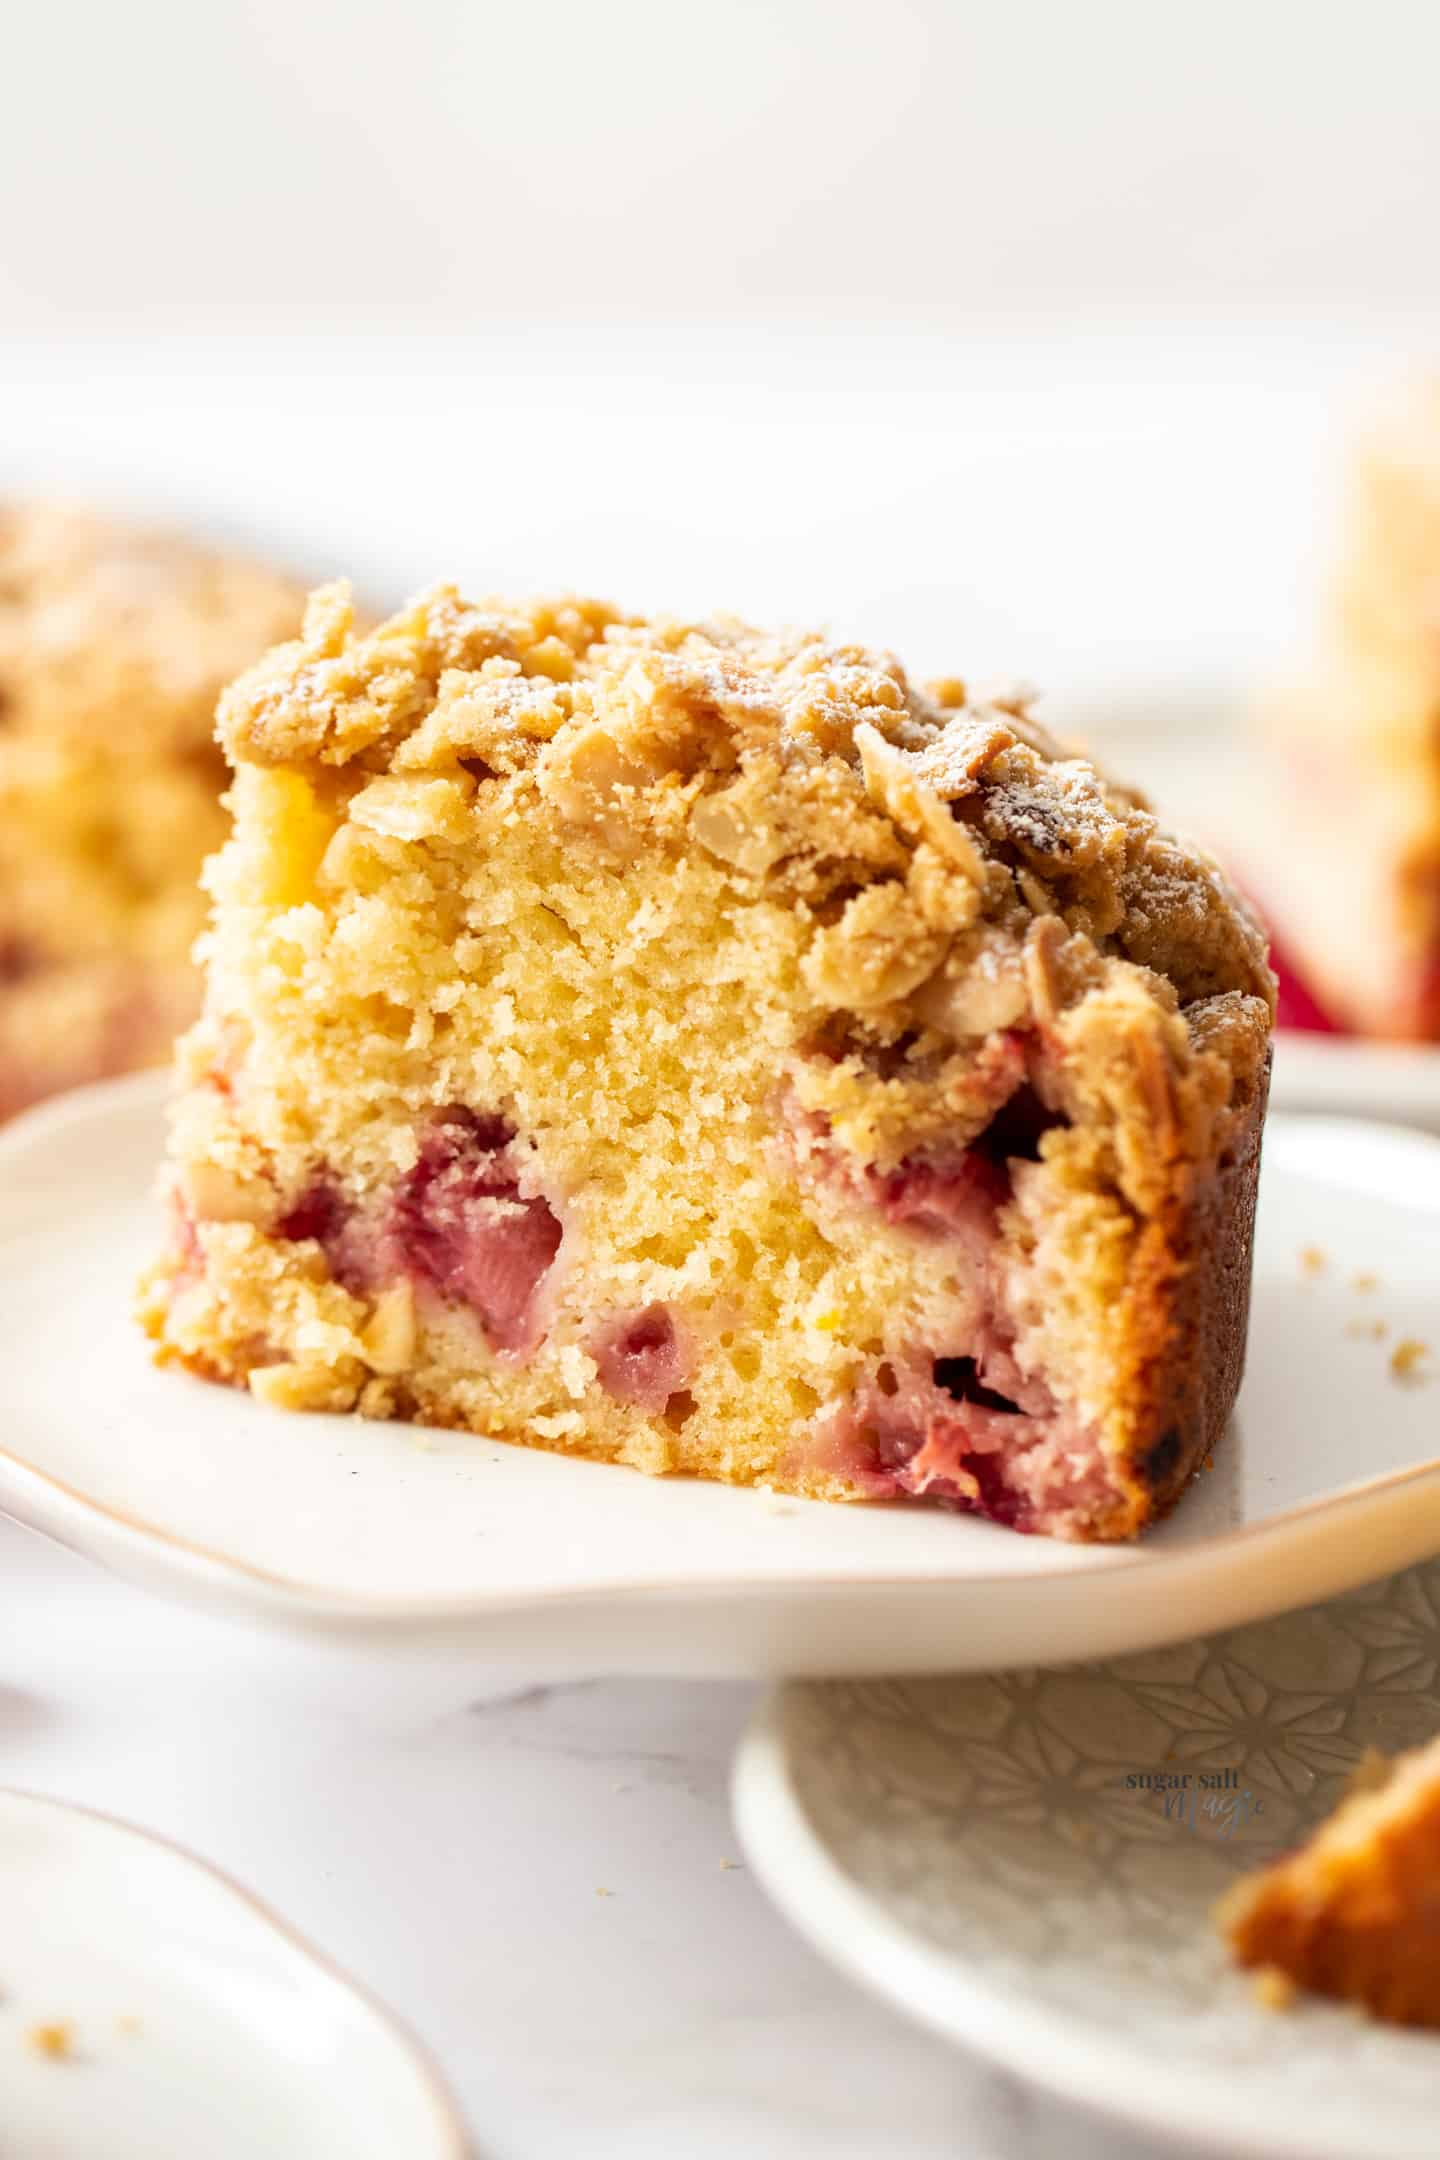 Closeup of a slice of strawberry crumb cake on a white plate.